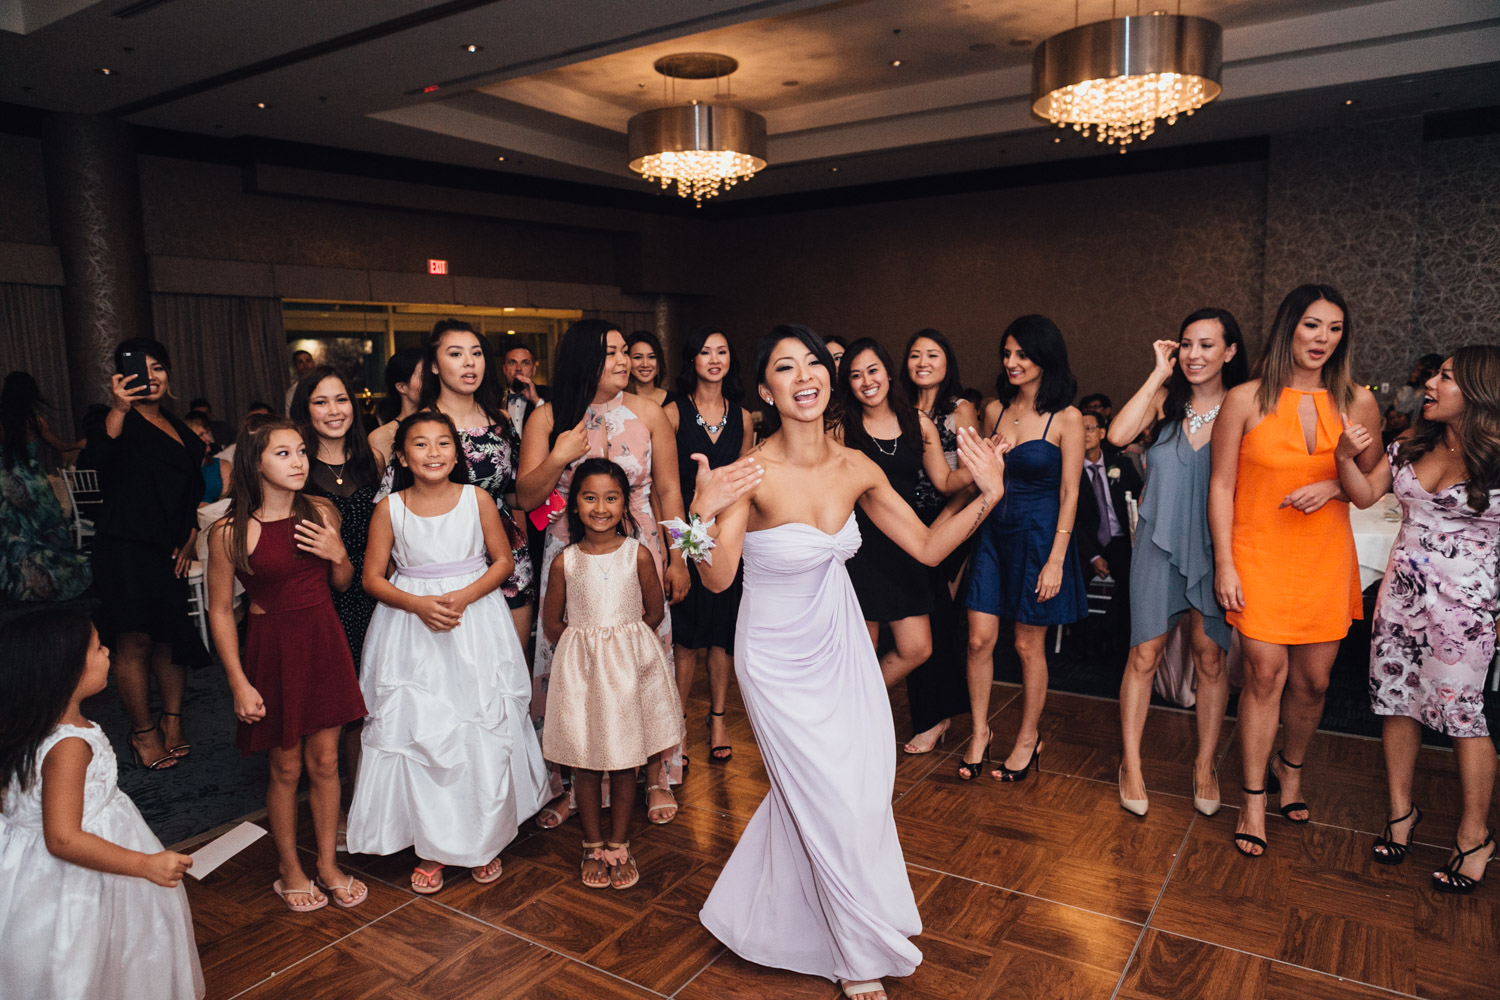 bouquet toss wedding reception photography in north vancouver pinnacle at the pier amie nguyen